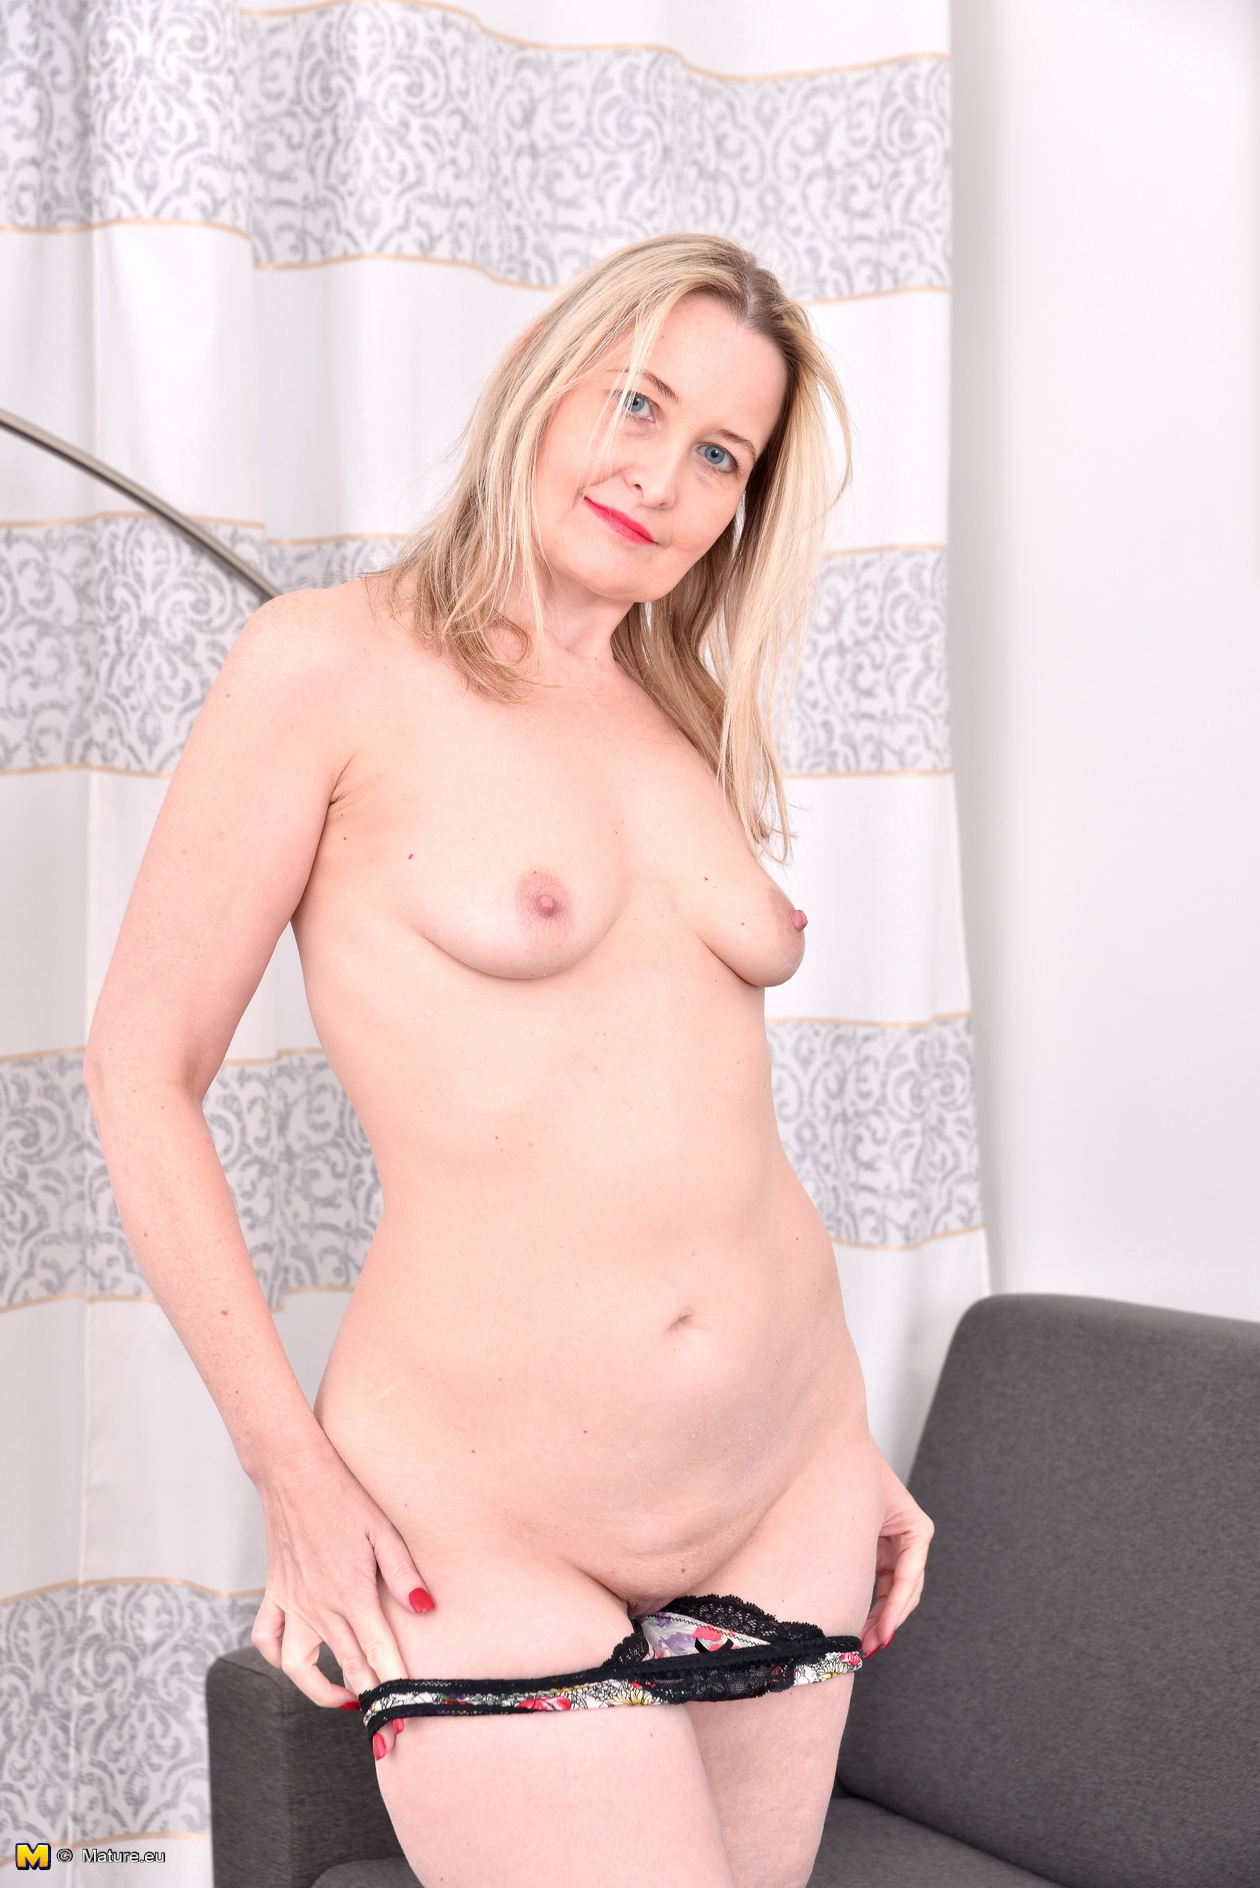 Kinky Light-haired British housewife frolicking with herself